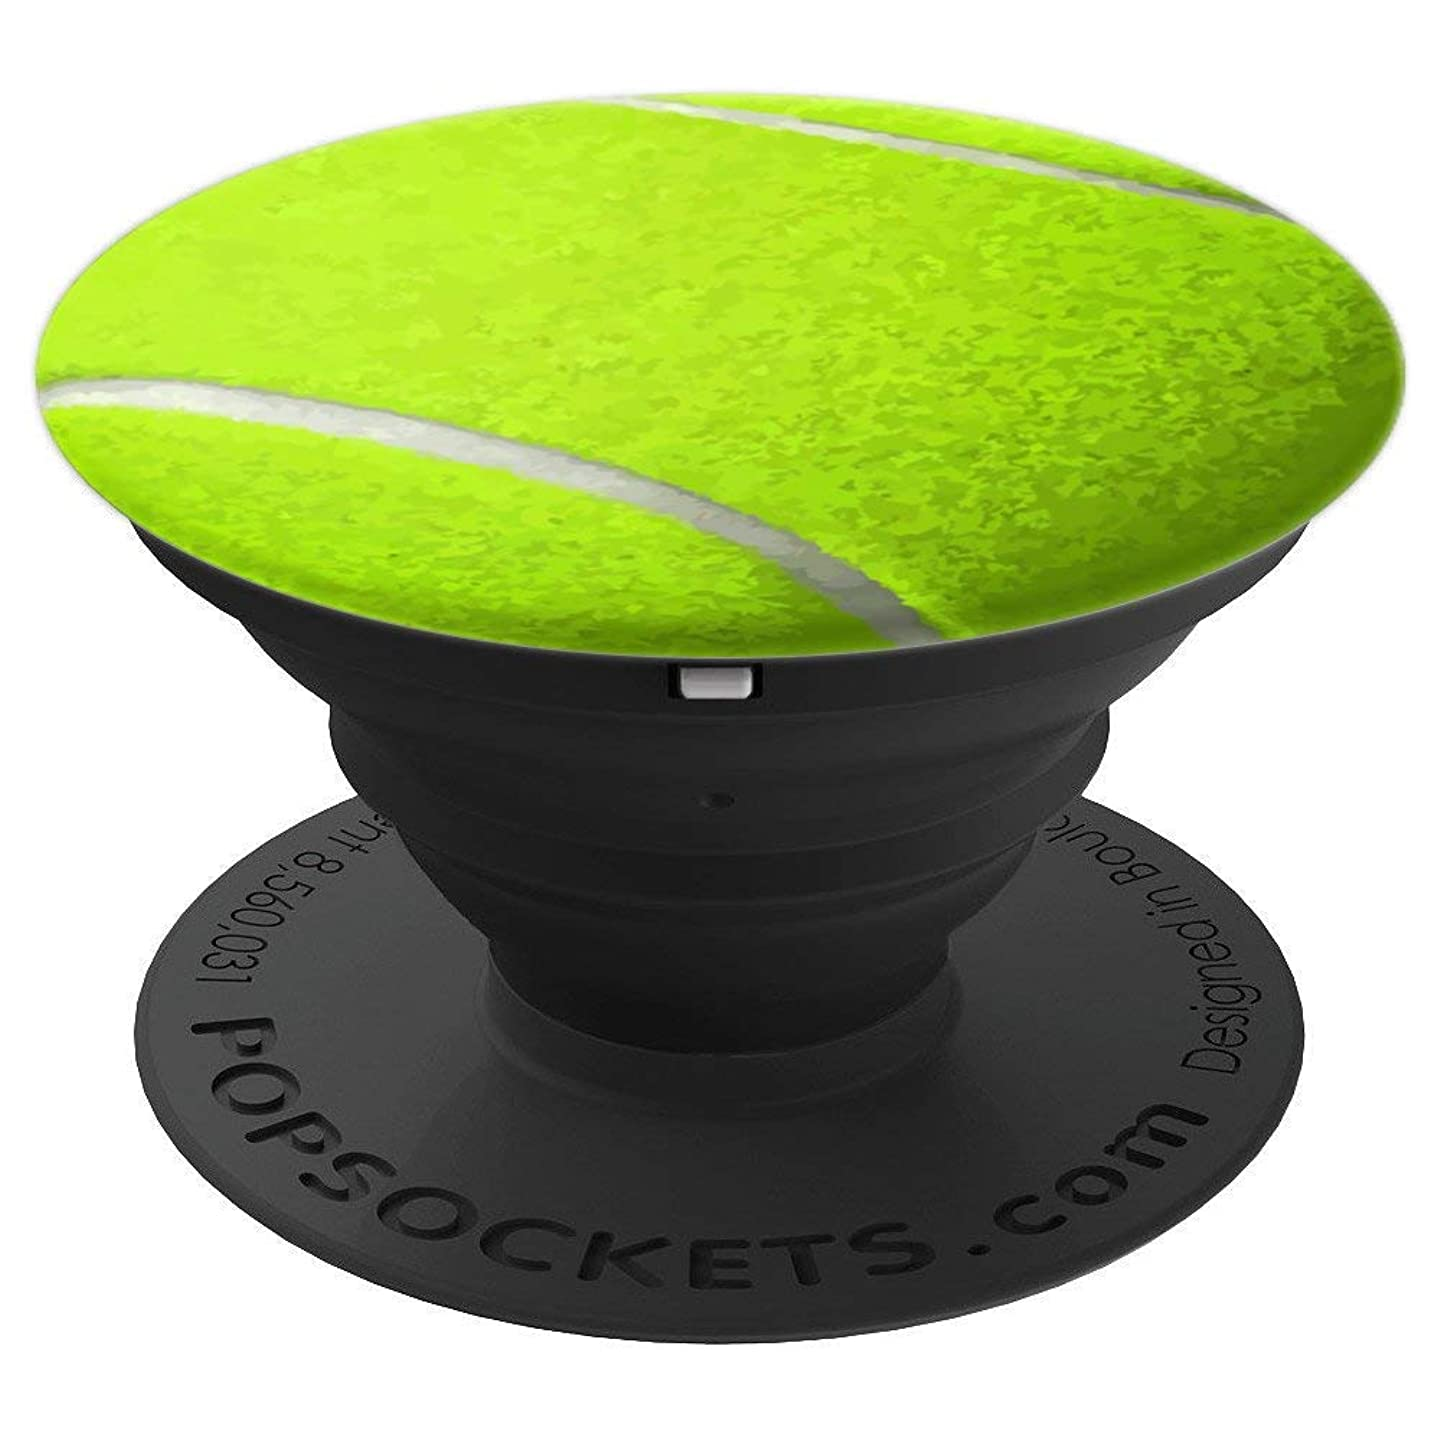 Tennis Ball Smart Device Accessory for Tennis Fans - PopSockets Grip and Stand for Phones and Tablets